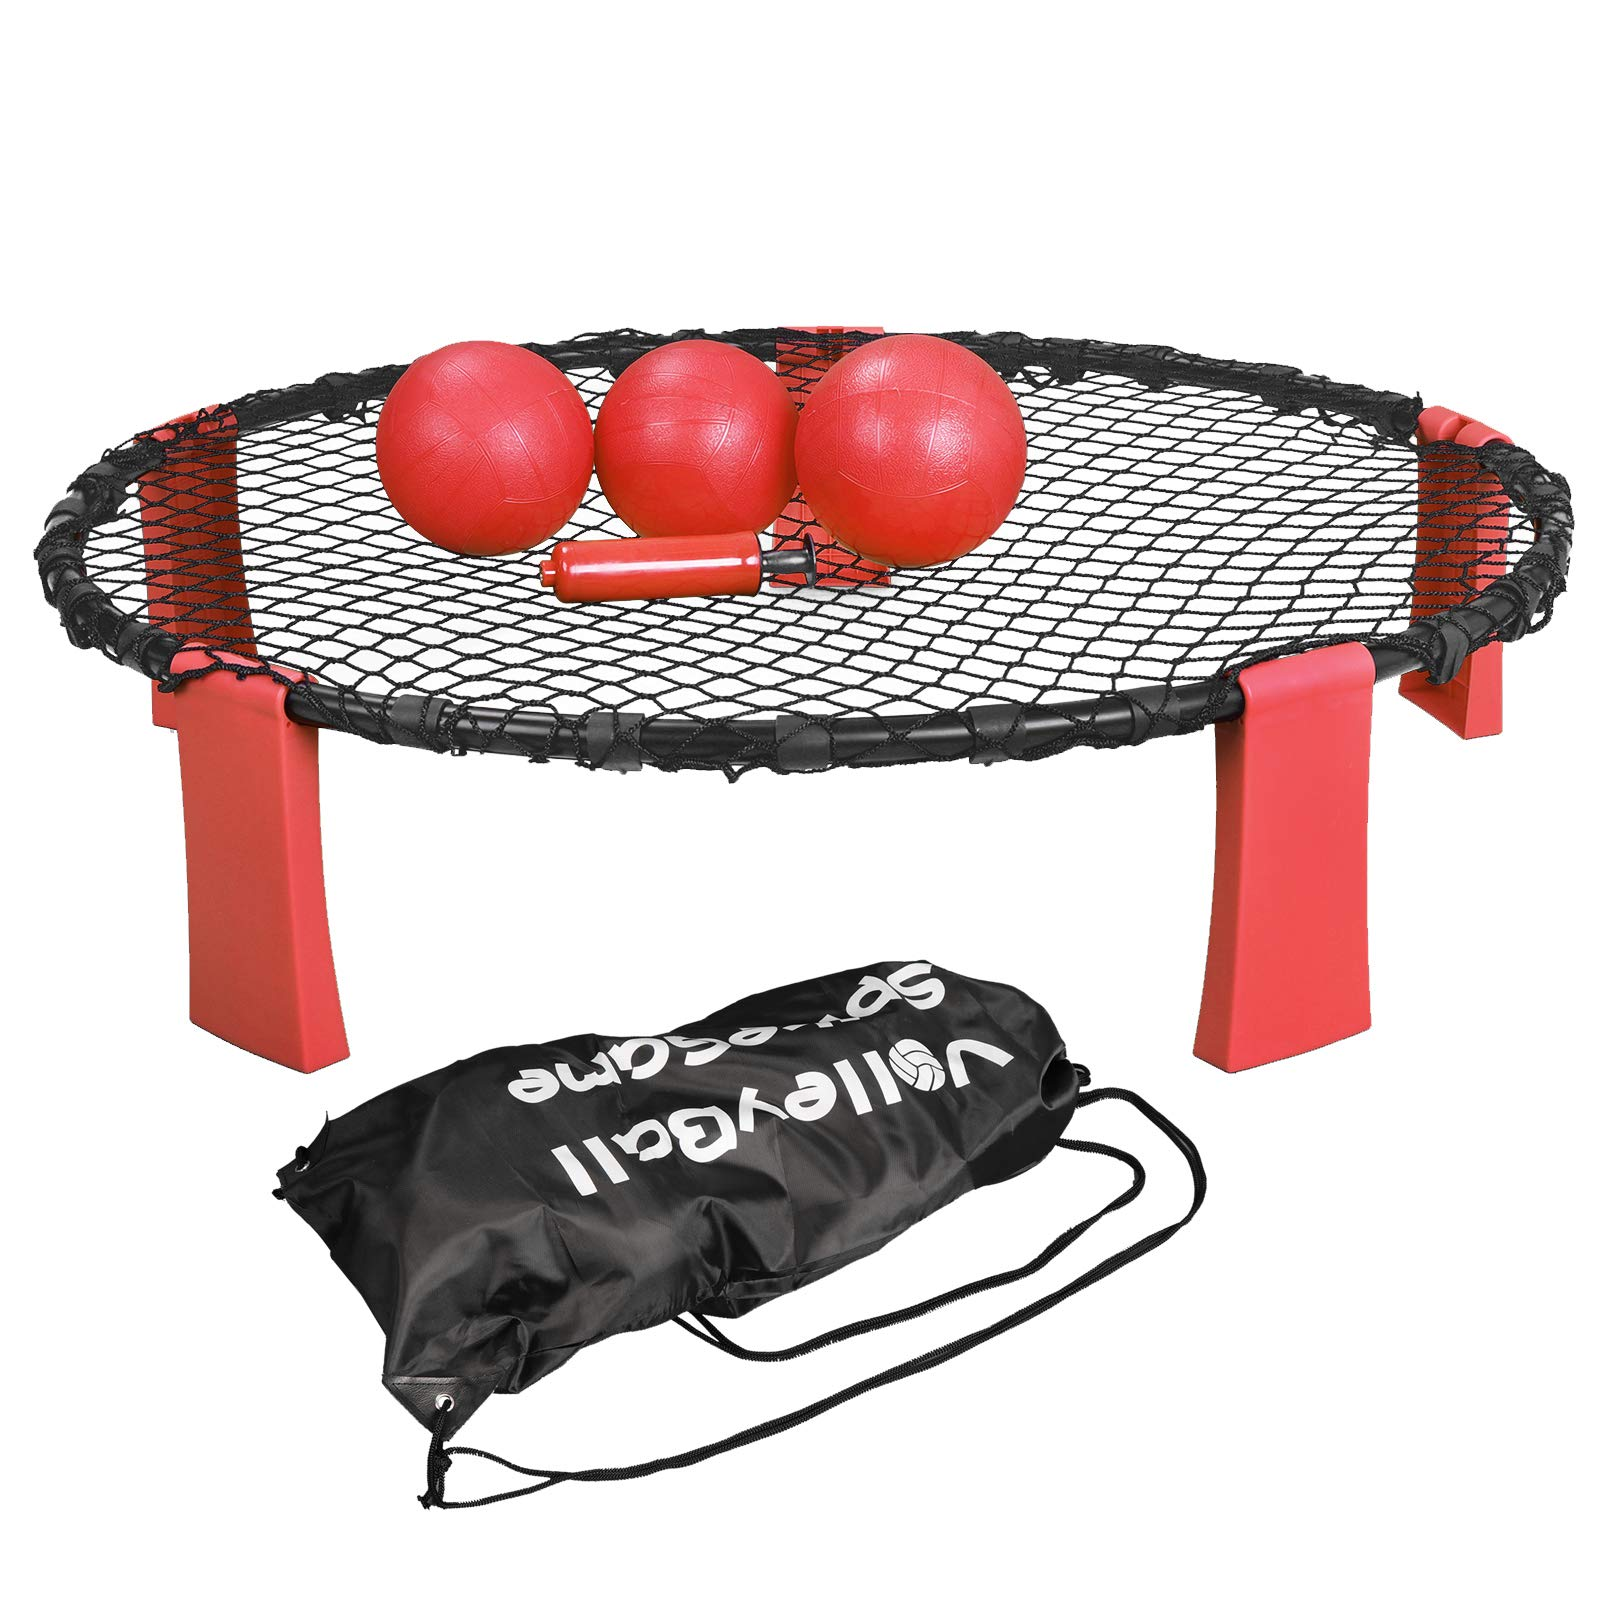 ZENY Volleyball Spike Game Combo Set Premium Spike Ball Battle Game Sets for Lawn, Beach, Camping, Yard,Fun Outdoor Games for Adults and Kids - Competitive or Recreational Volleyball Tournament by ZENY